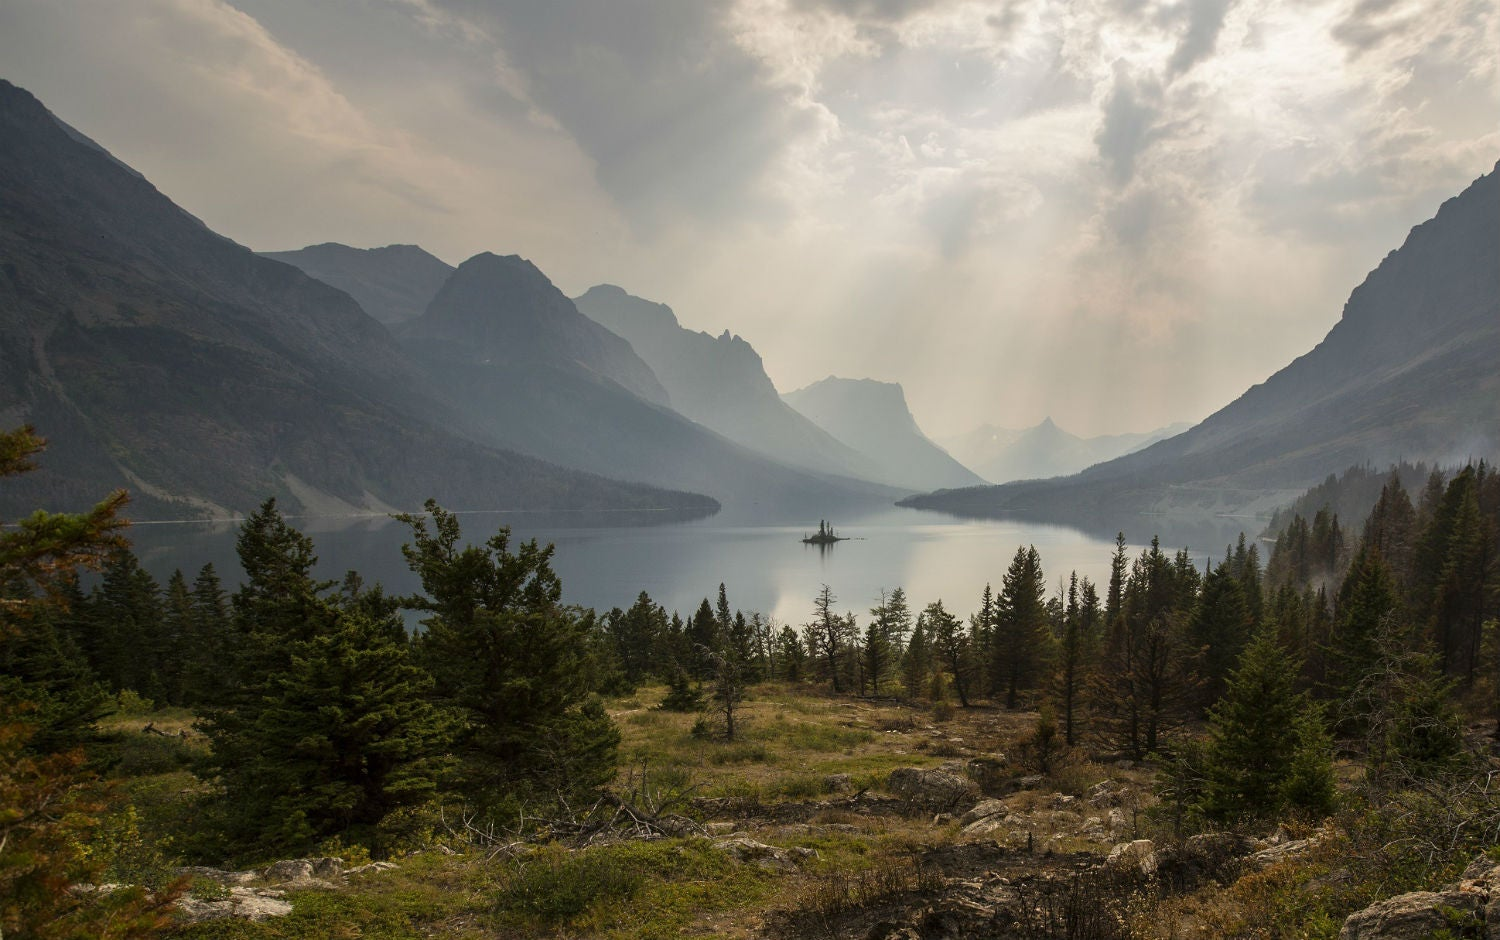 How to Find Free Dispersed Camping in National Forests